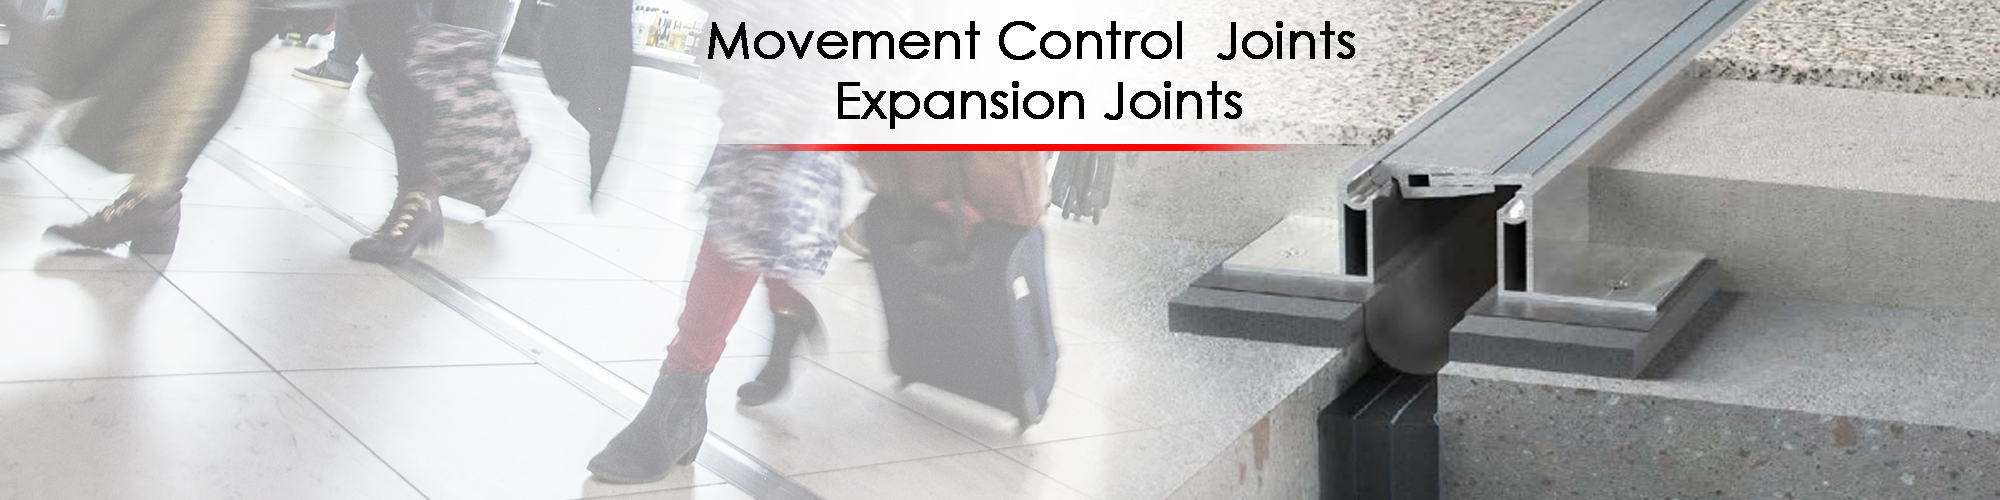 Movement-Control-Joints